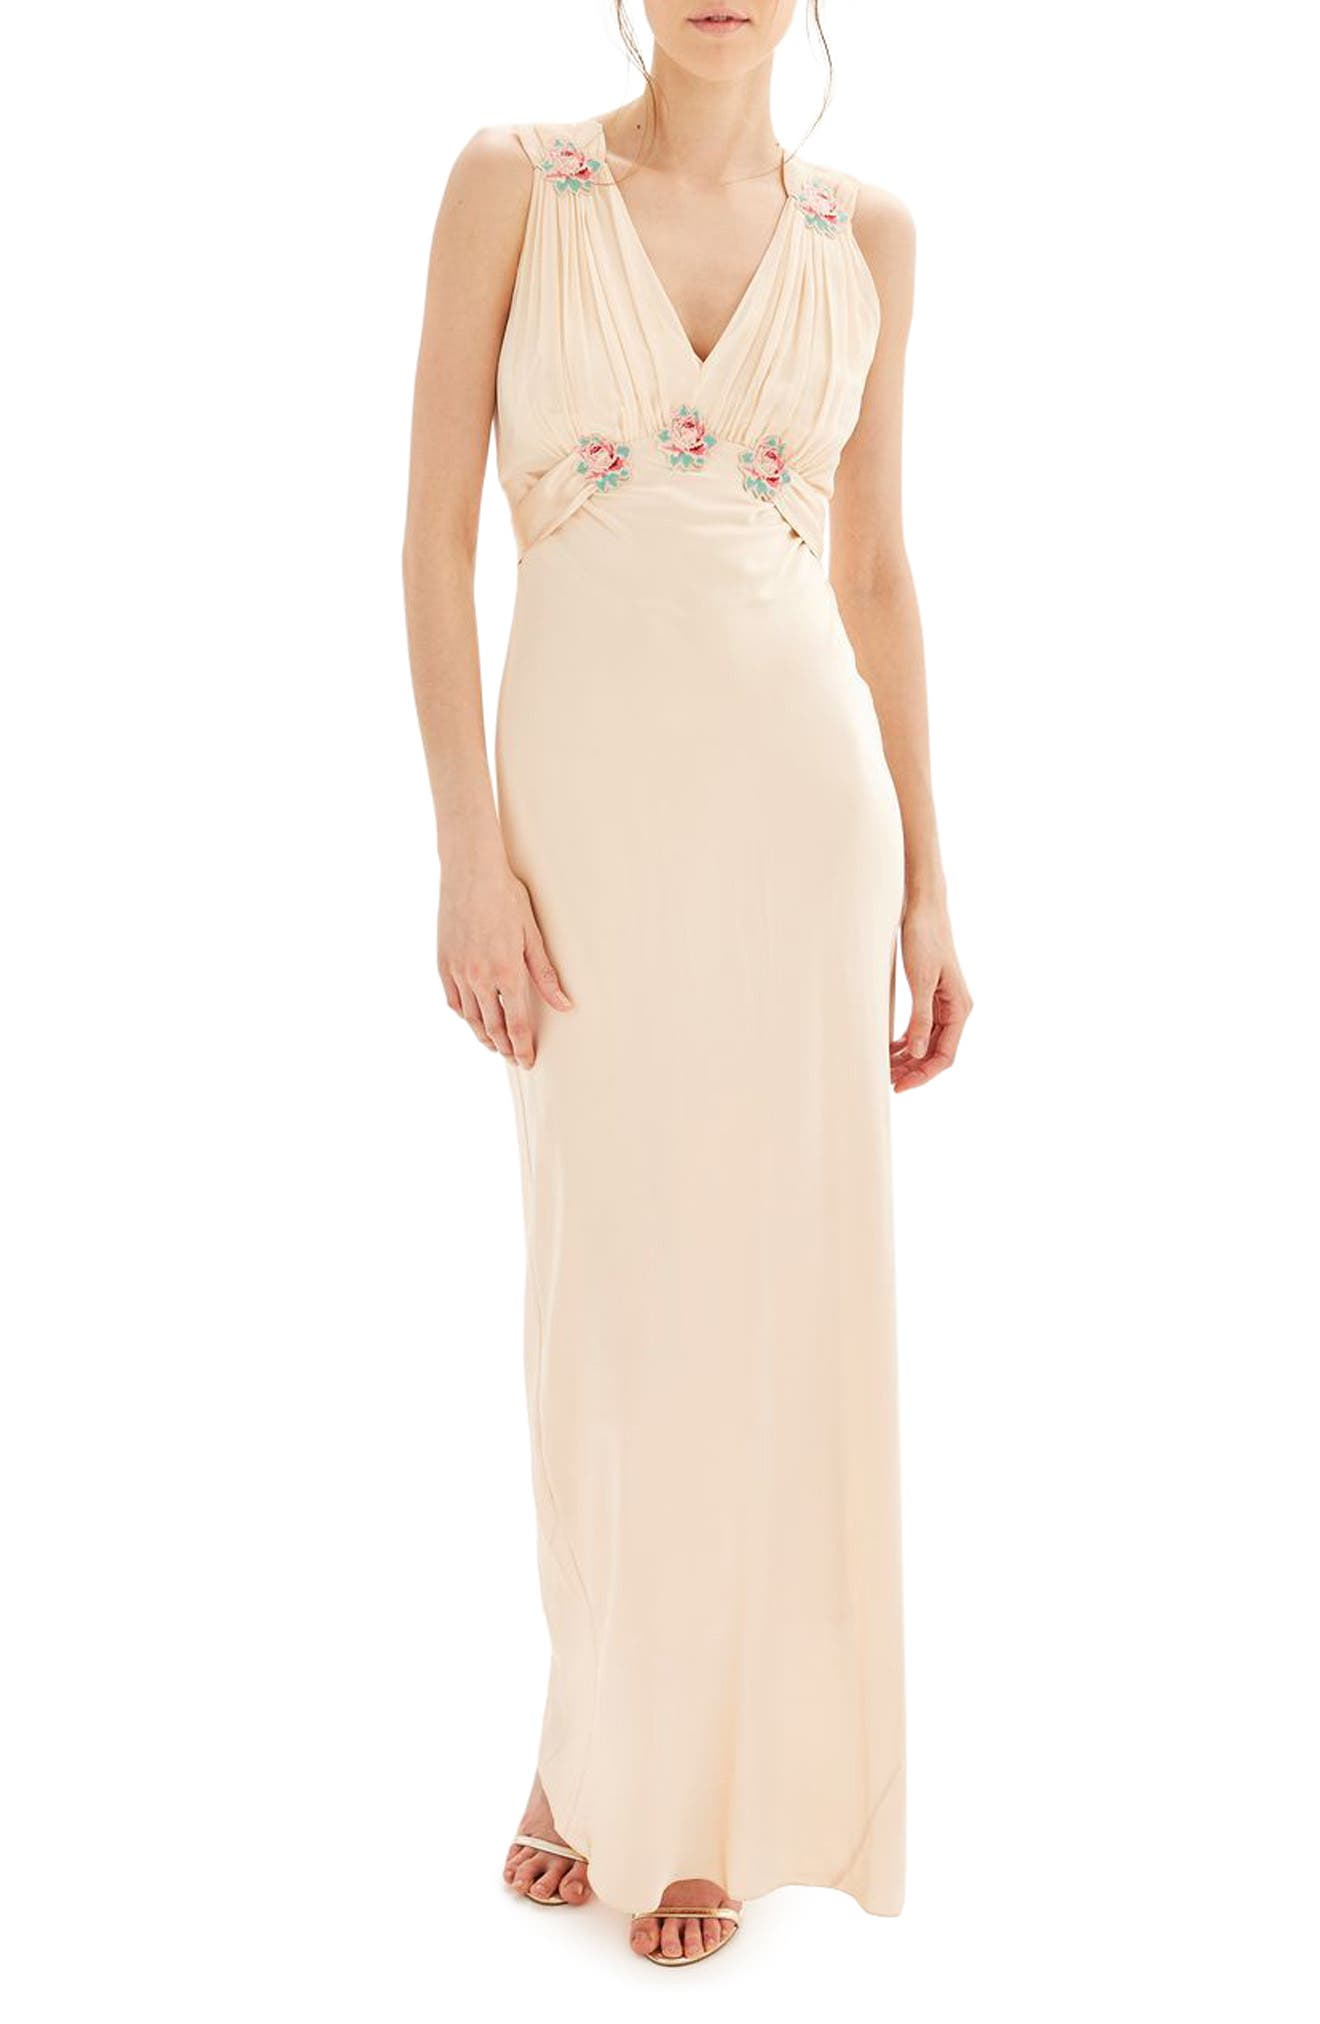 Bride Embroidered Silk Gown,                             Main thumbnail 1, color,                             250